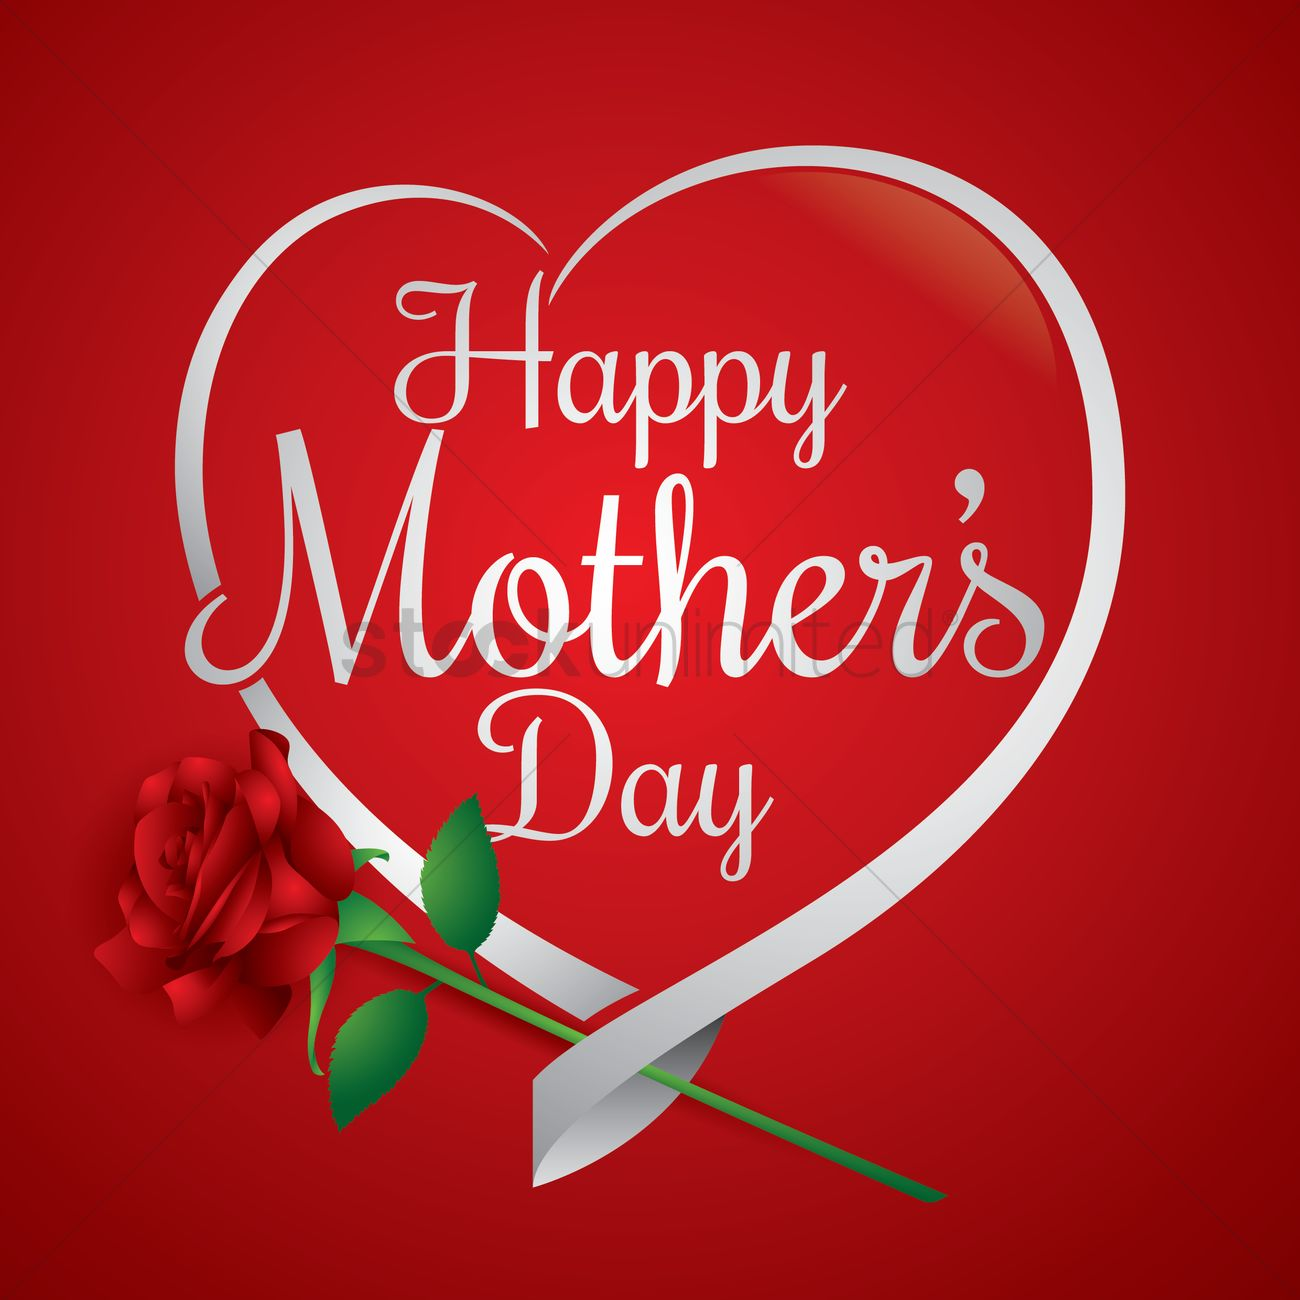 images of happy mother's day - HD 1300×1300